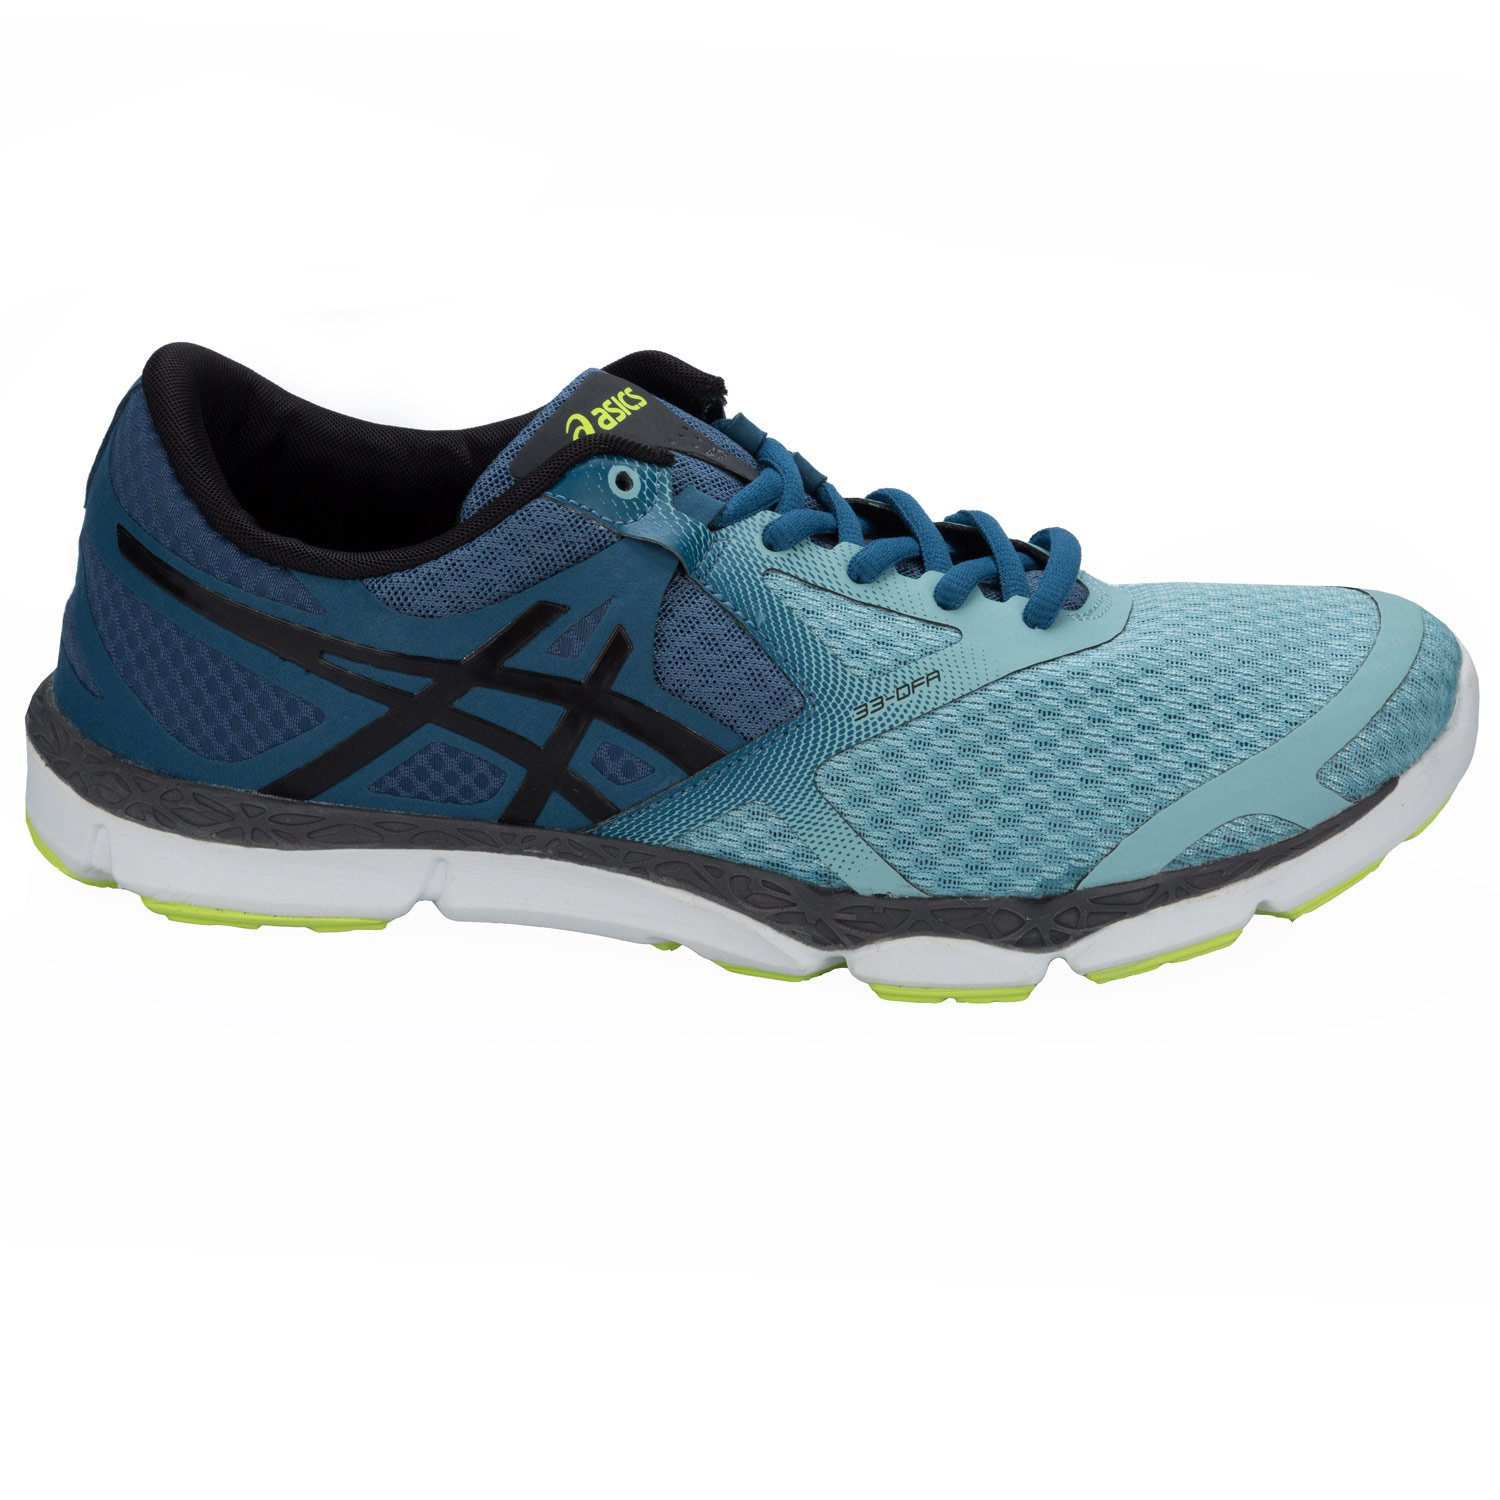 a5142370ce ASICS Mens Mens 33 DFA Running Trainers in Light Blue - UK 5.5:  Amazon.co.uk: Shoes & Bags